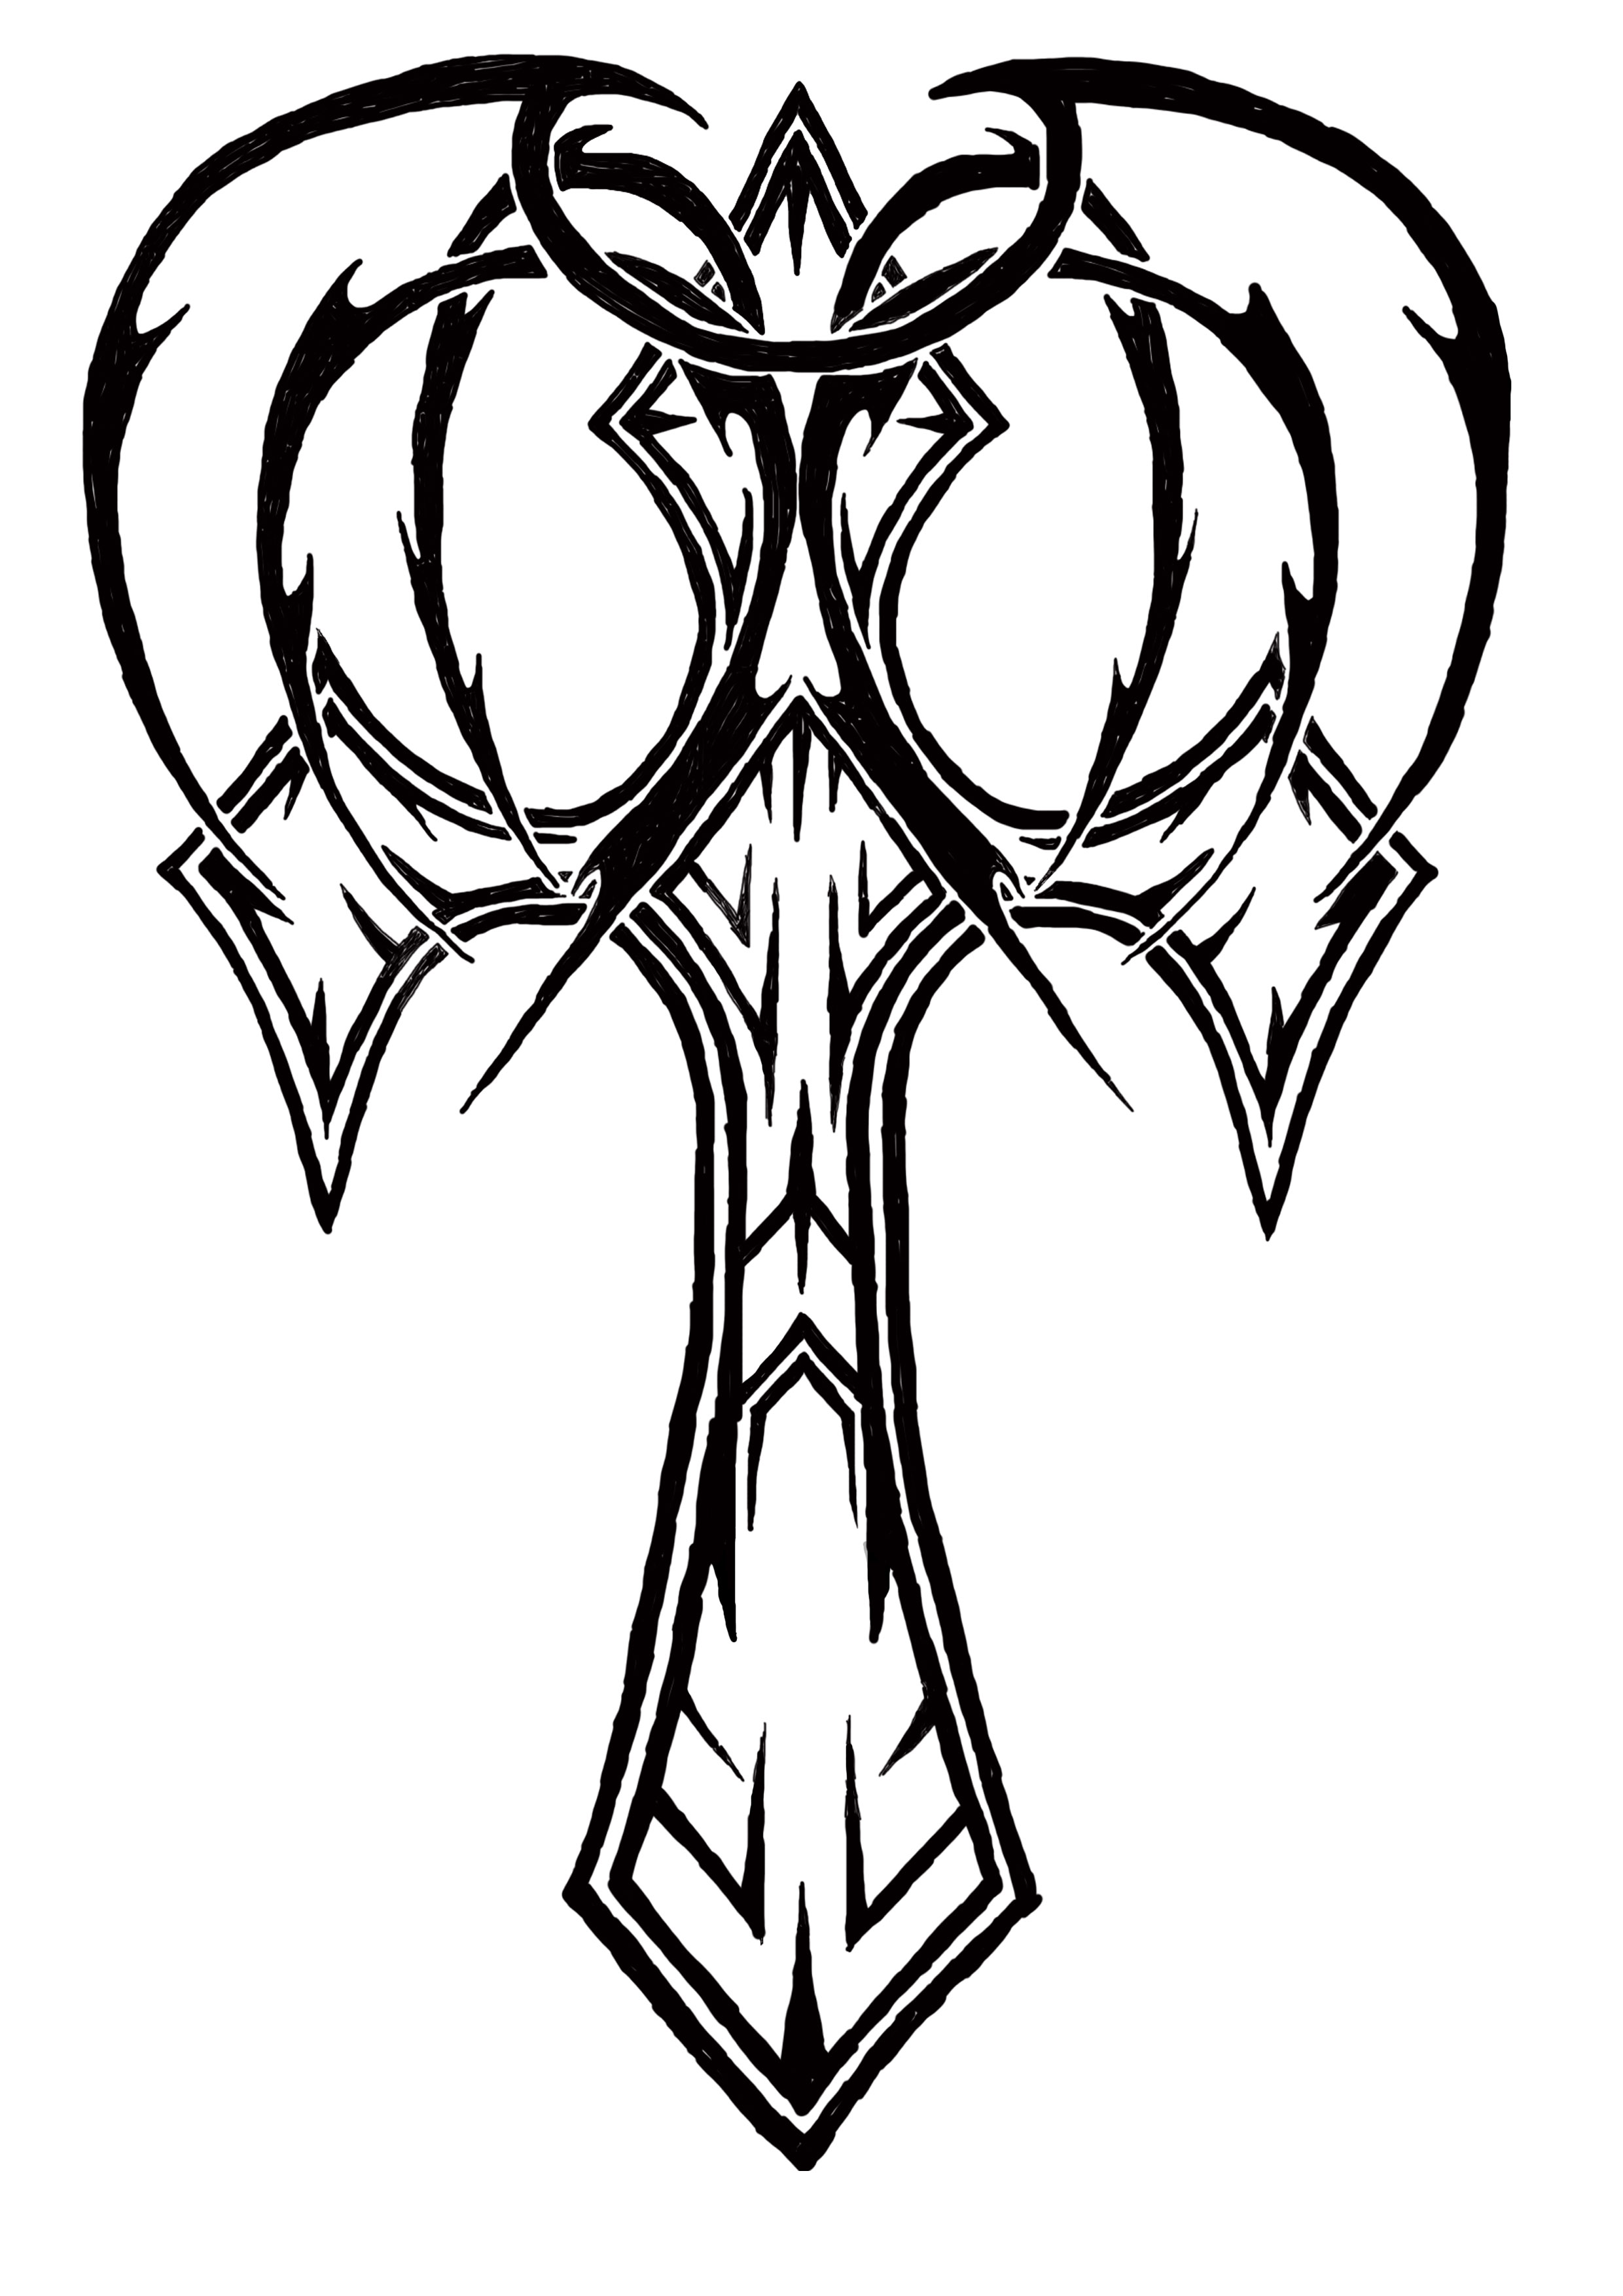 2480x3508 Cool Crosses To Draw